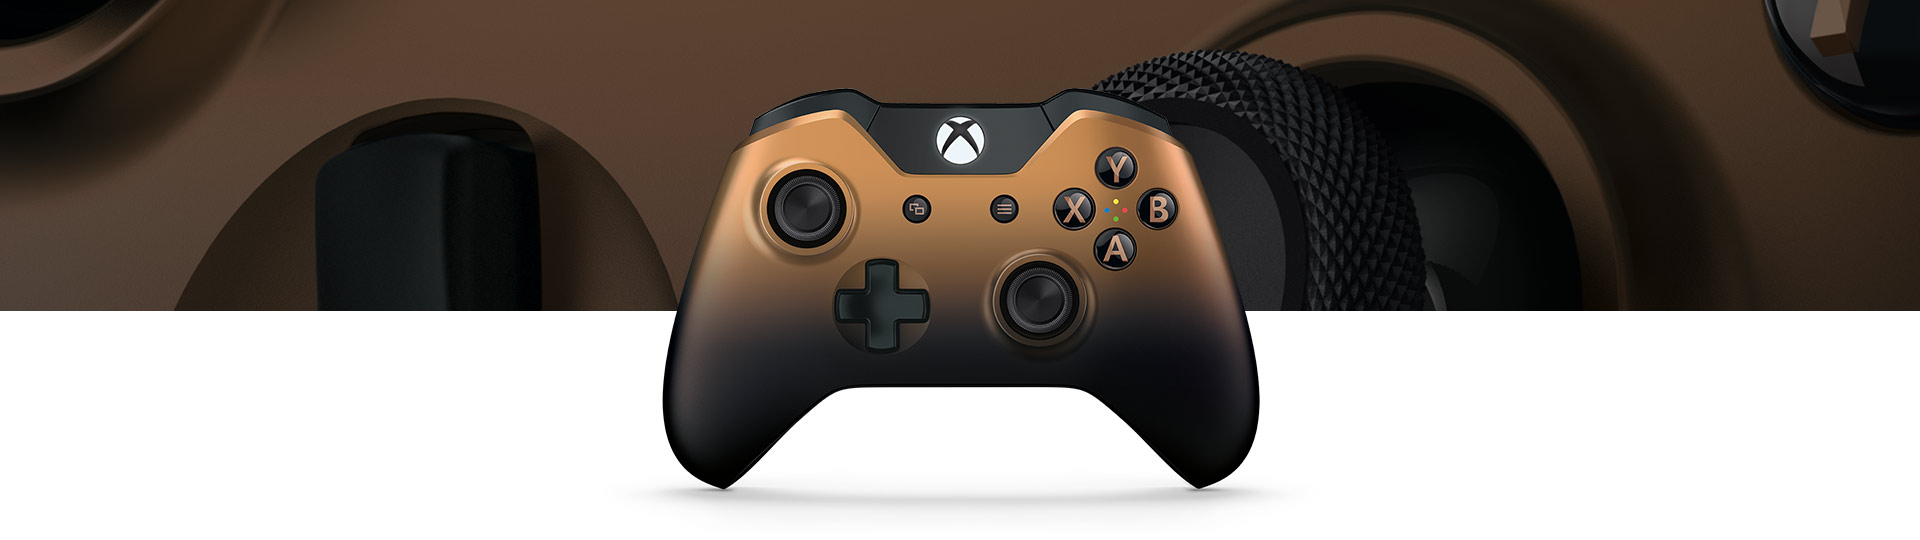 Langaton Xbox One Special Edition Copper Shadow -ohjain